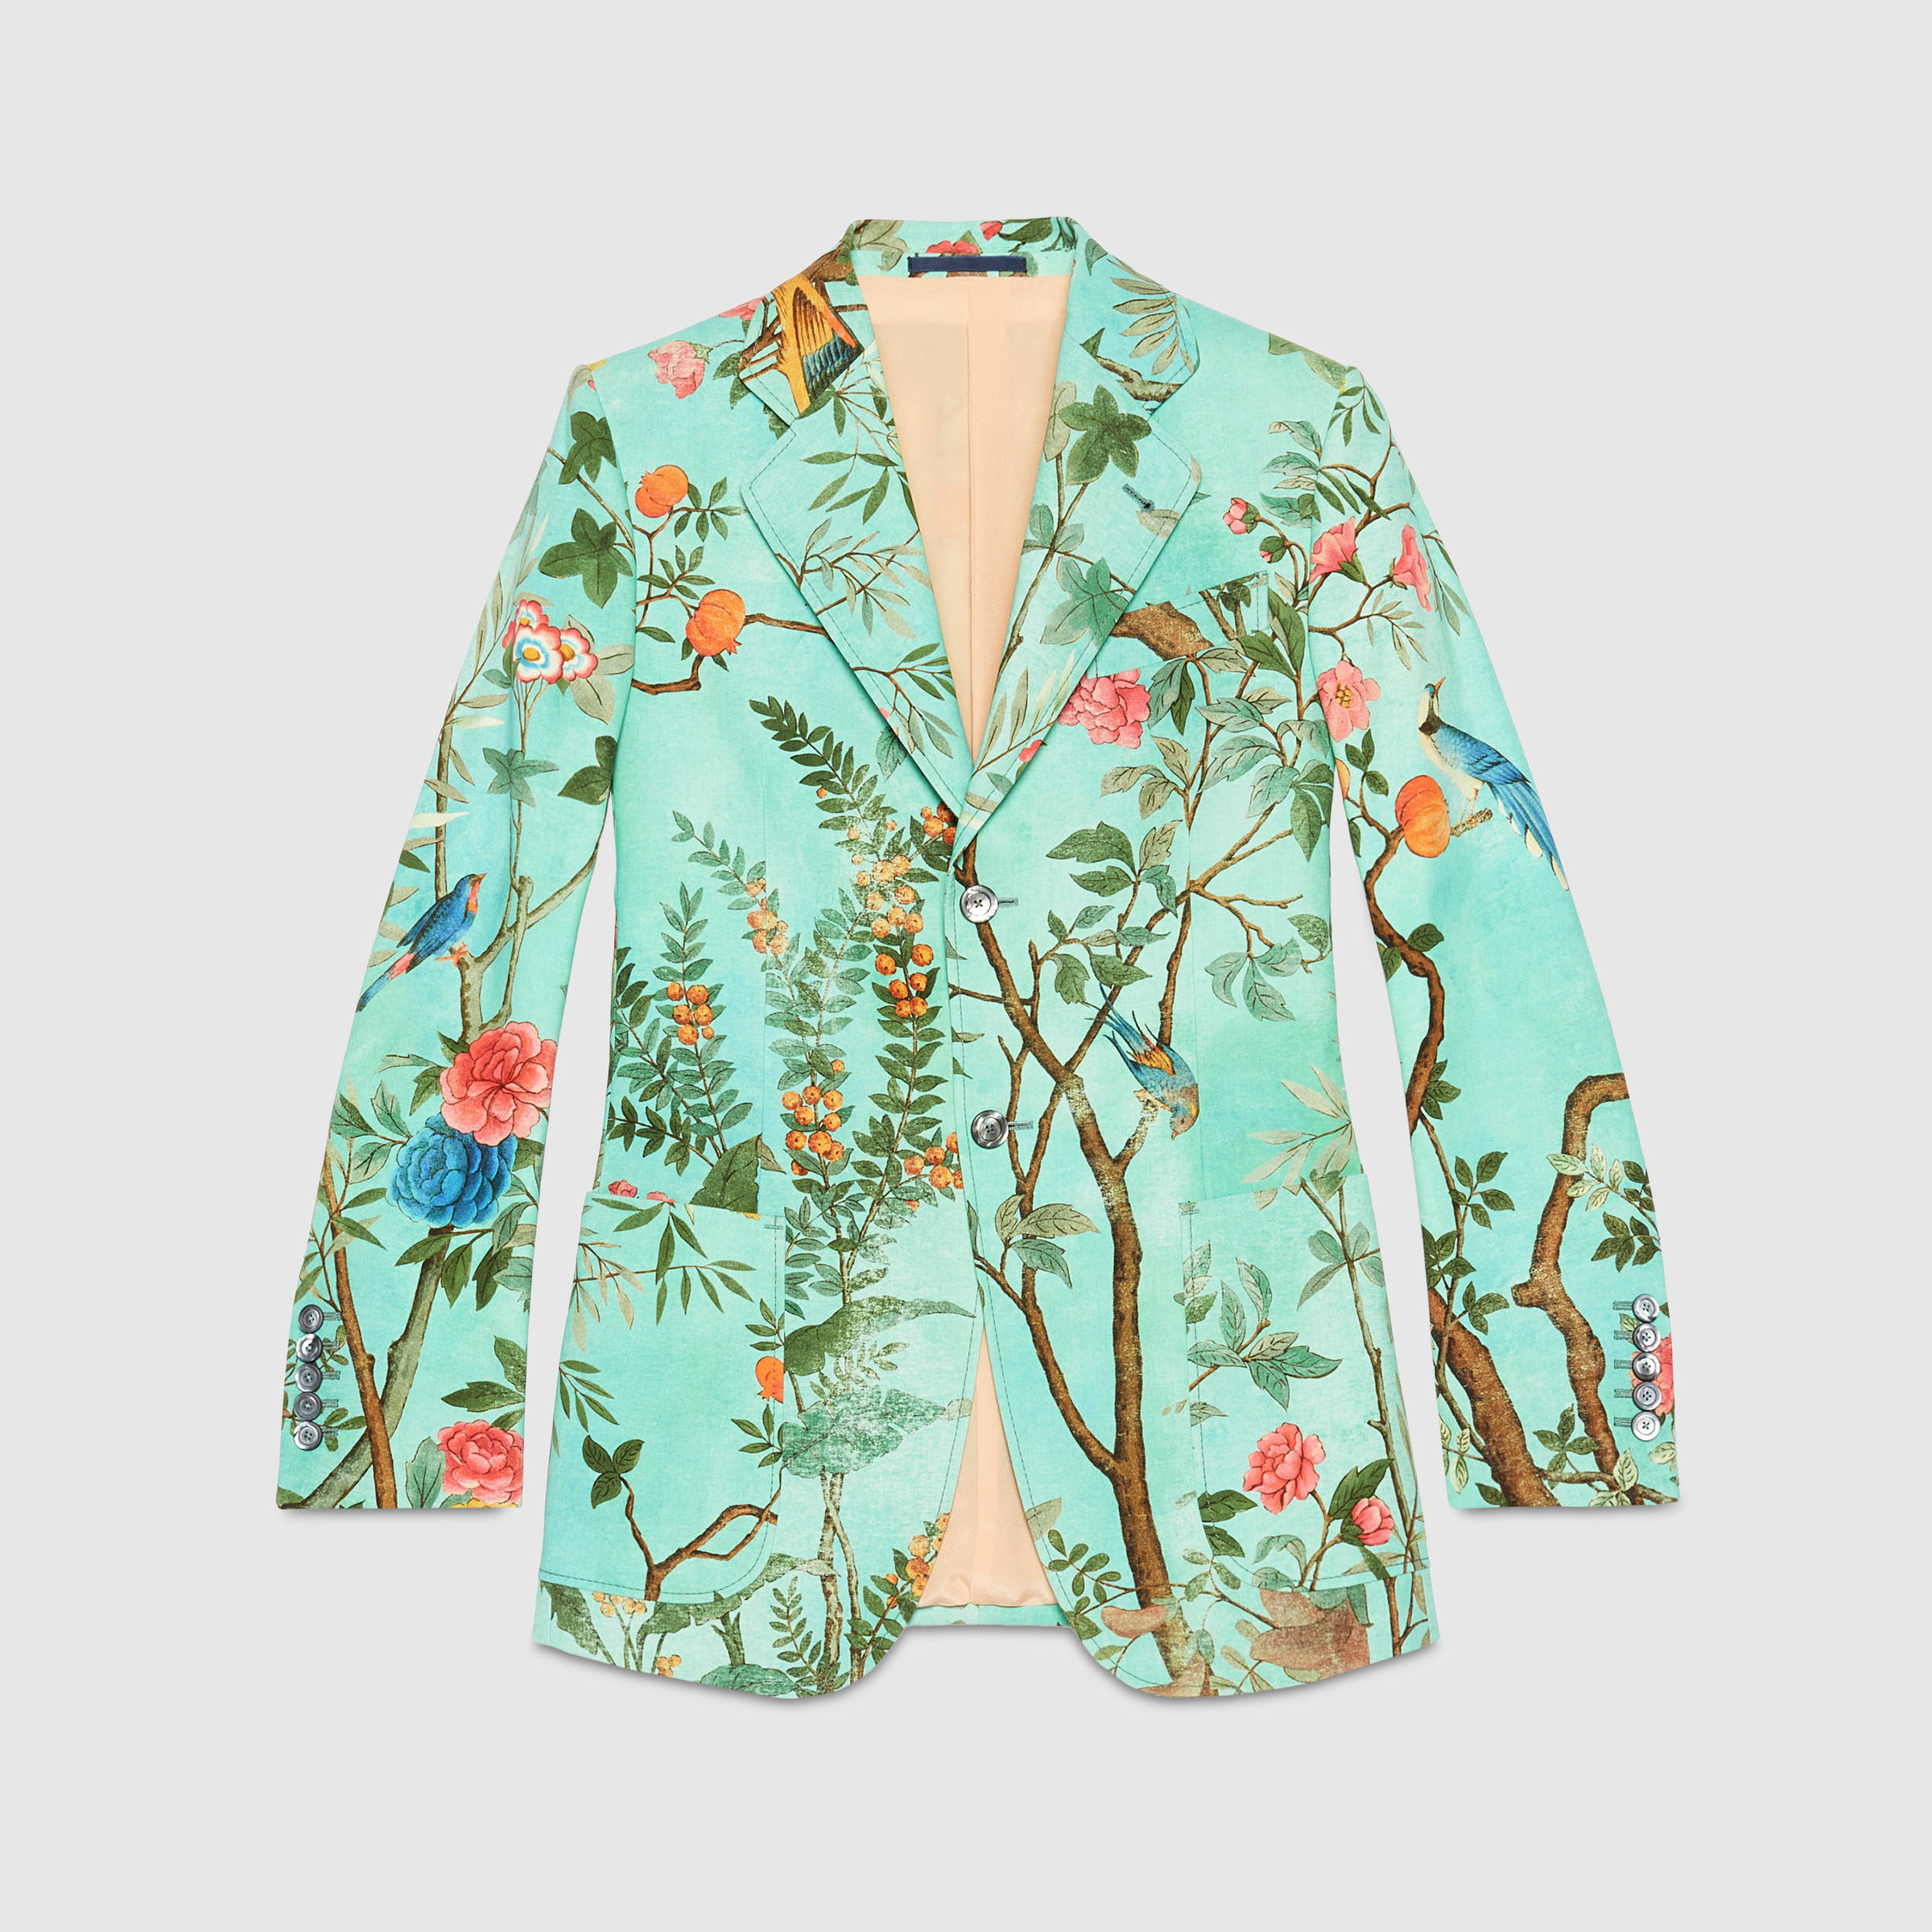 gucci-heritage-floral-print-jacket